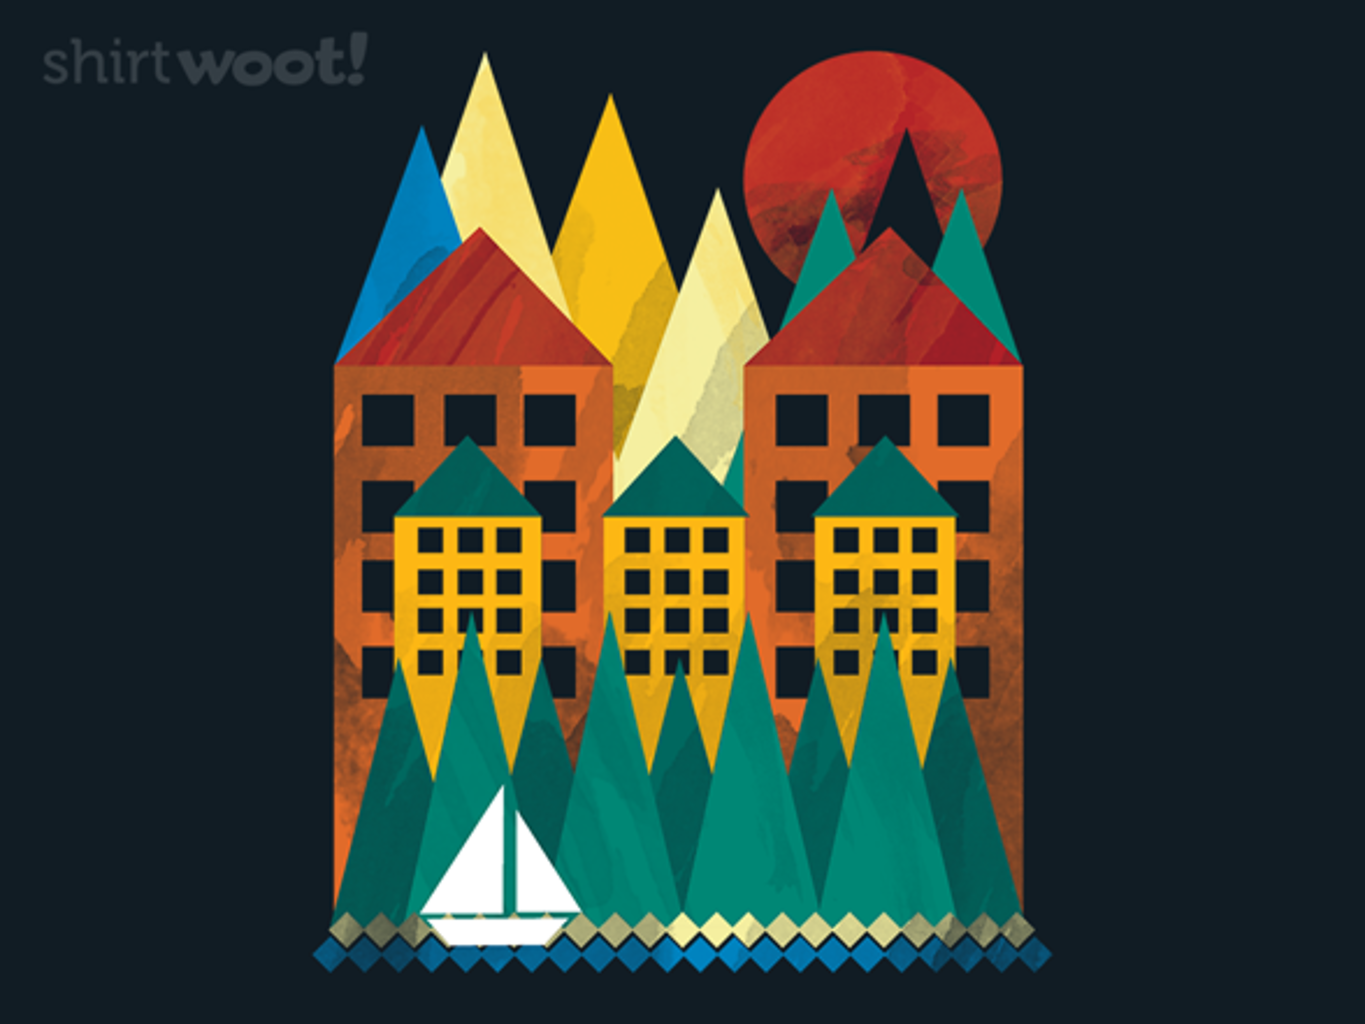 Woot!: Abstract World